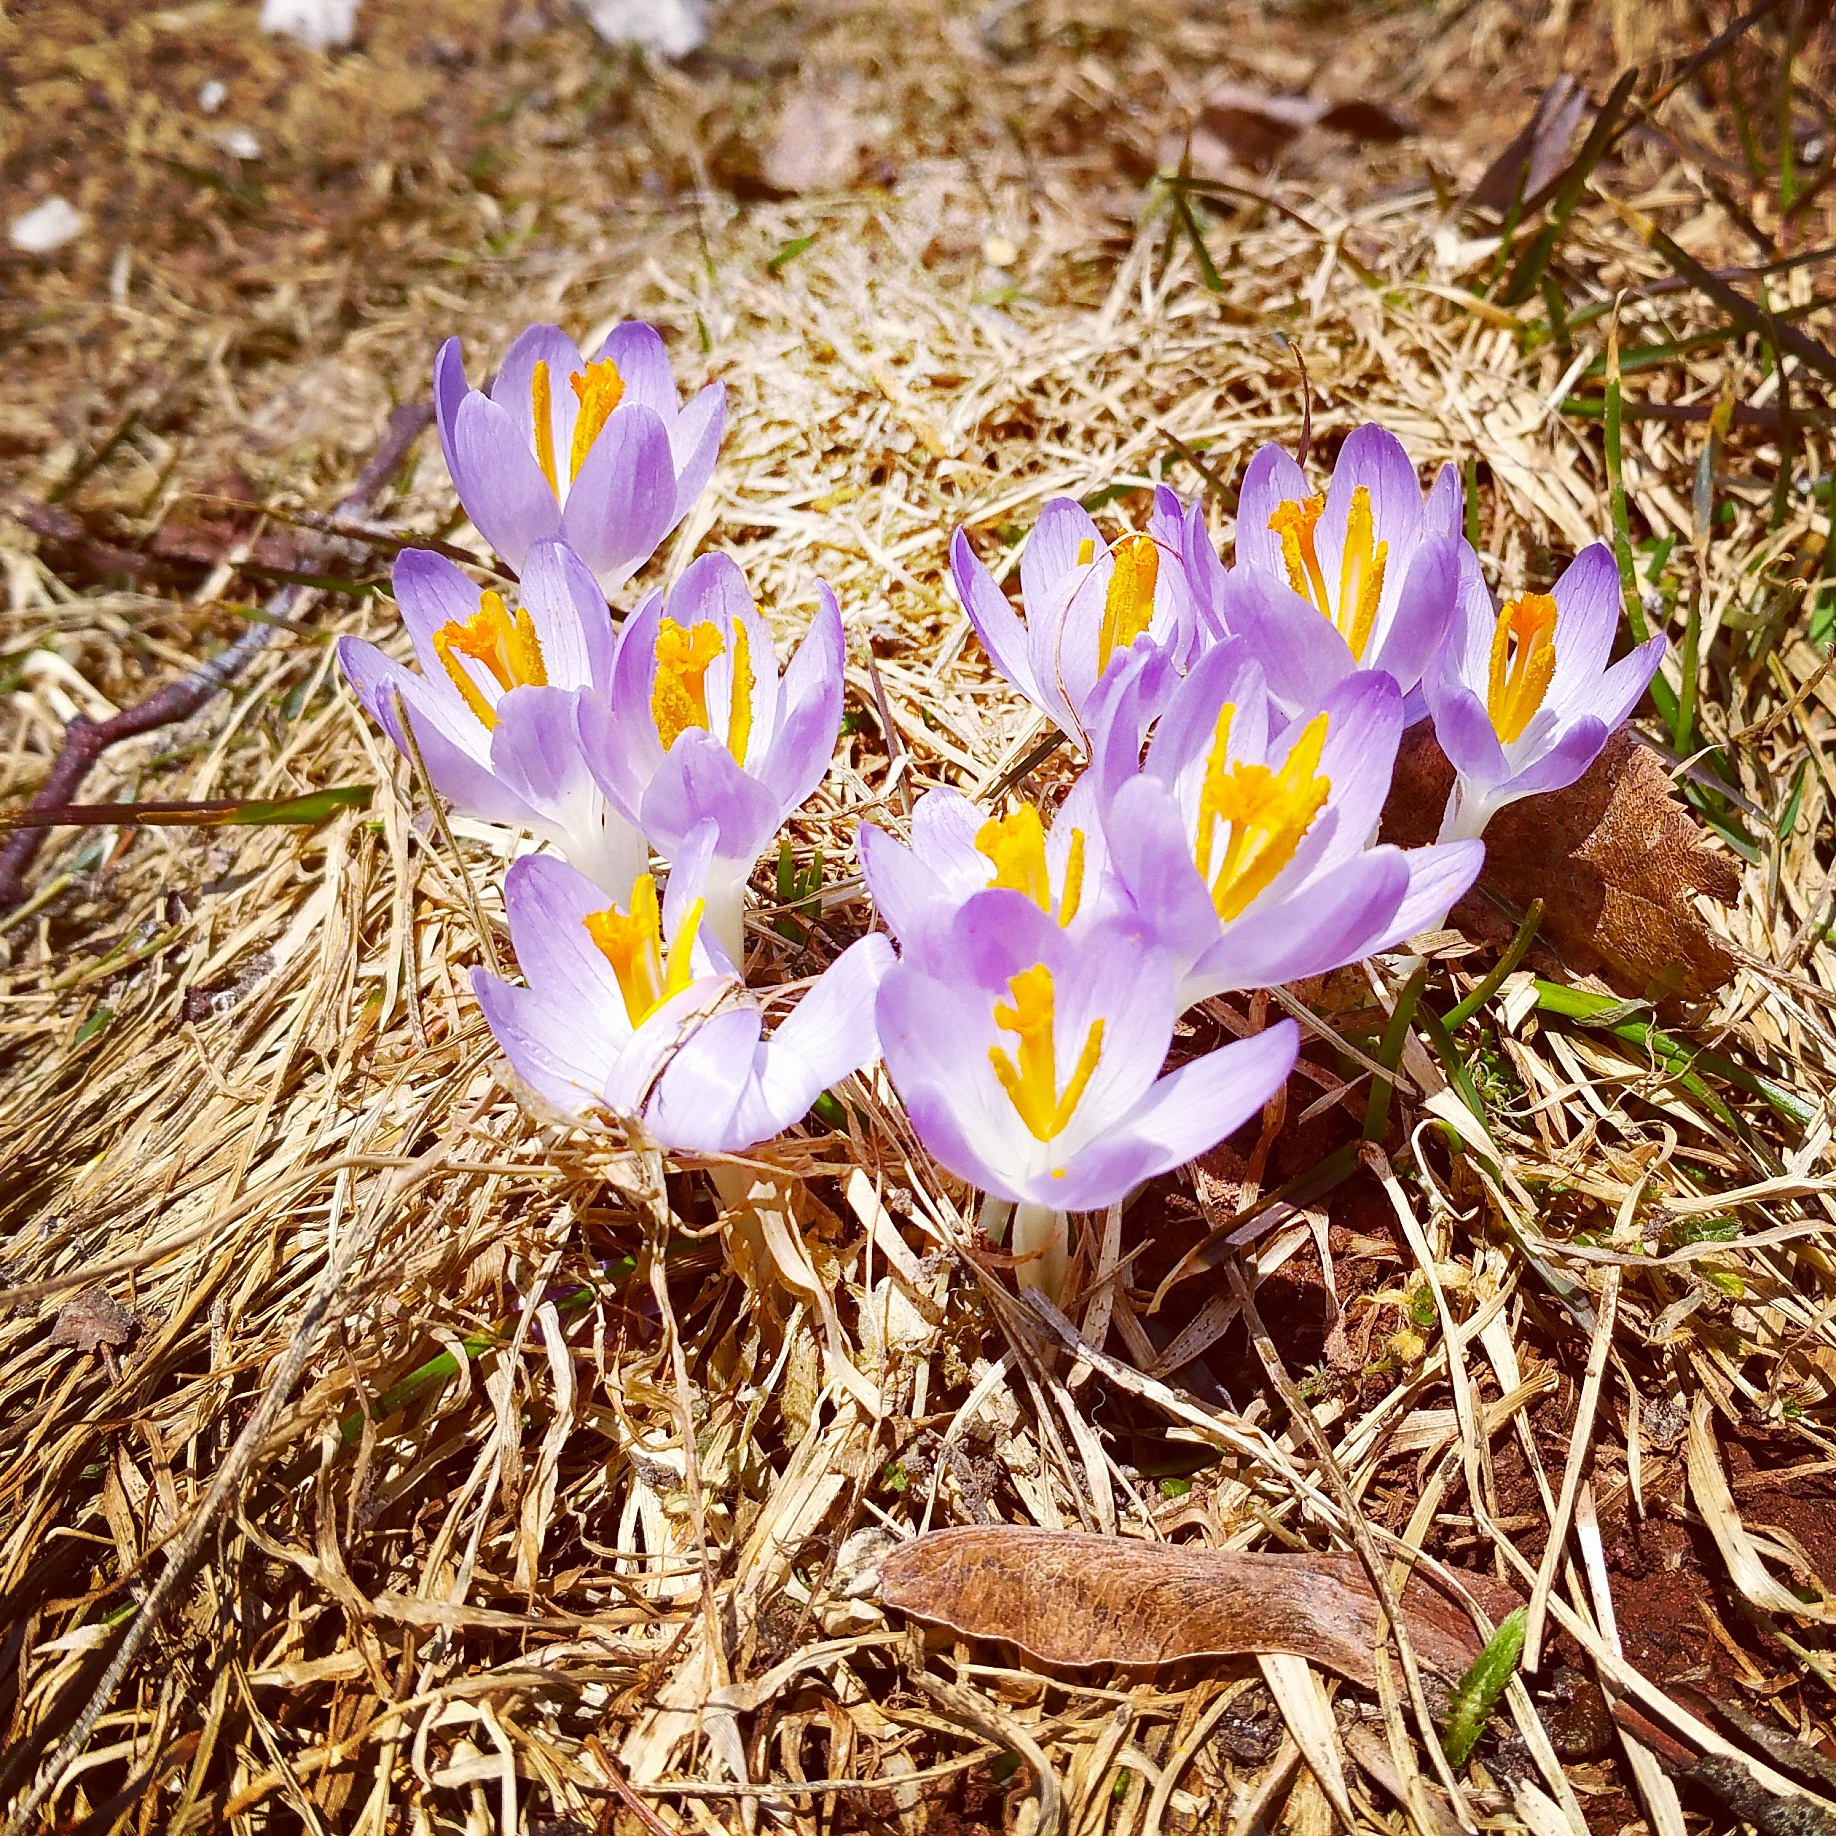 my sweet husband took a photo of these in our front yard and texted it to me...made my day :)